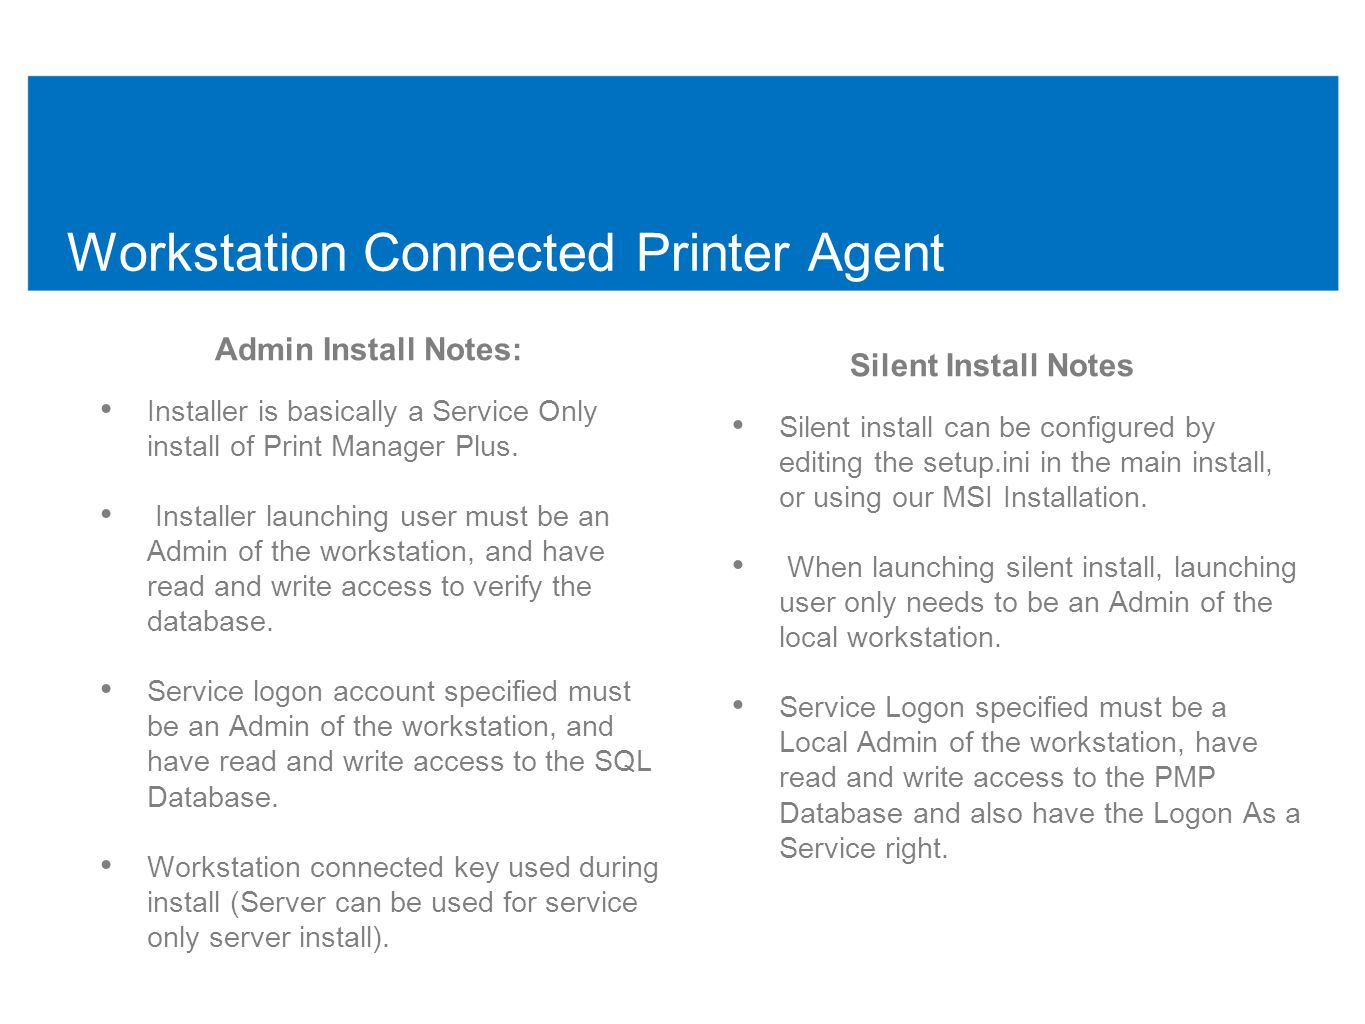 Workstation Connected Printer Agent Admin Install Notes: • Installer is basically a Service Only install of Print Manager Plus.